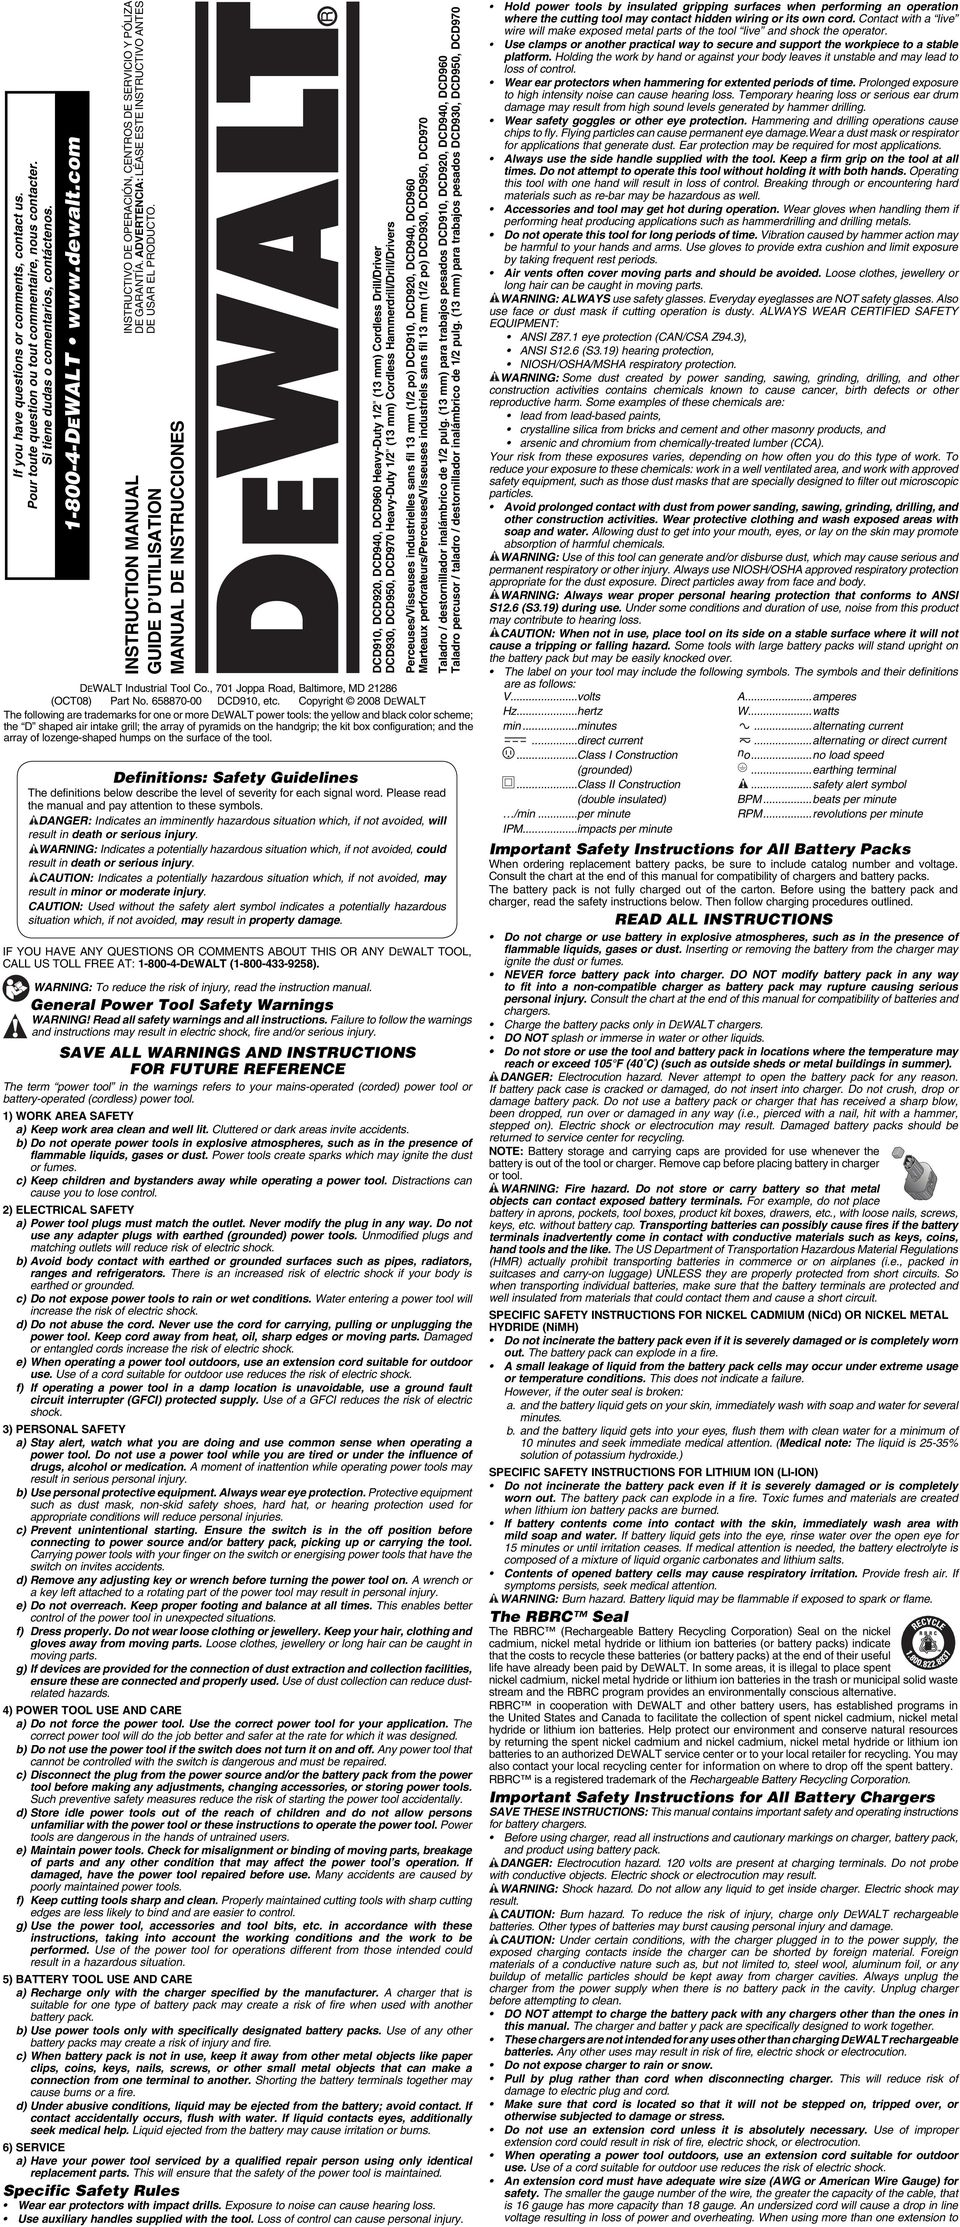 "INSTRUCTION MANUAL UIDE D UTILISATION MANUAL DE INSTRUCCIONES DCD910, DCD920, DCD940, DCD960 Heavy-Duty 1/2"" (13 mm) Cordless Drill/Driver DCD930, DCD950, DCD970 Heavy-Duty 1/2"" (13 mm) Cordless"